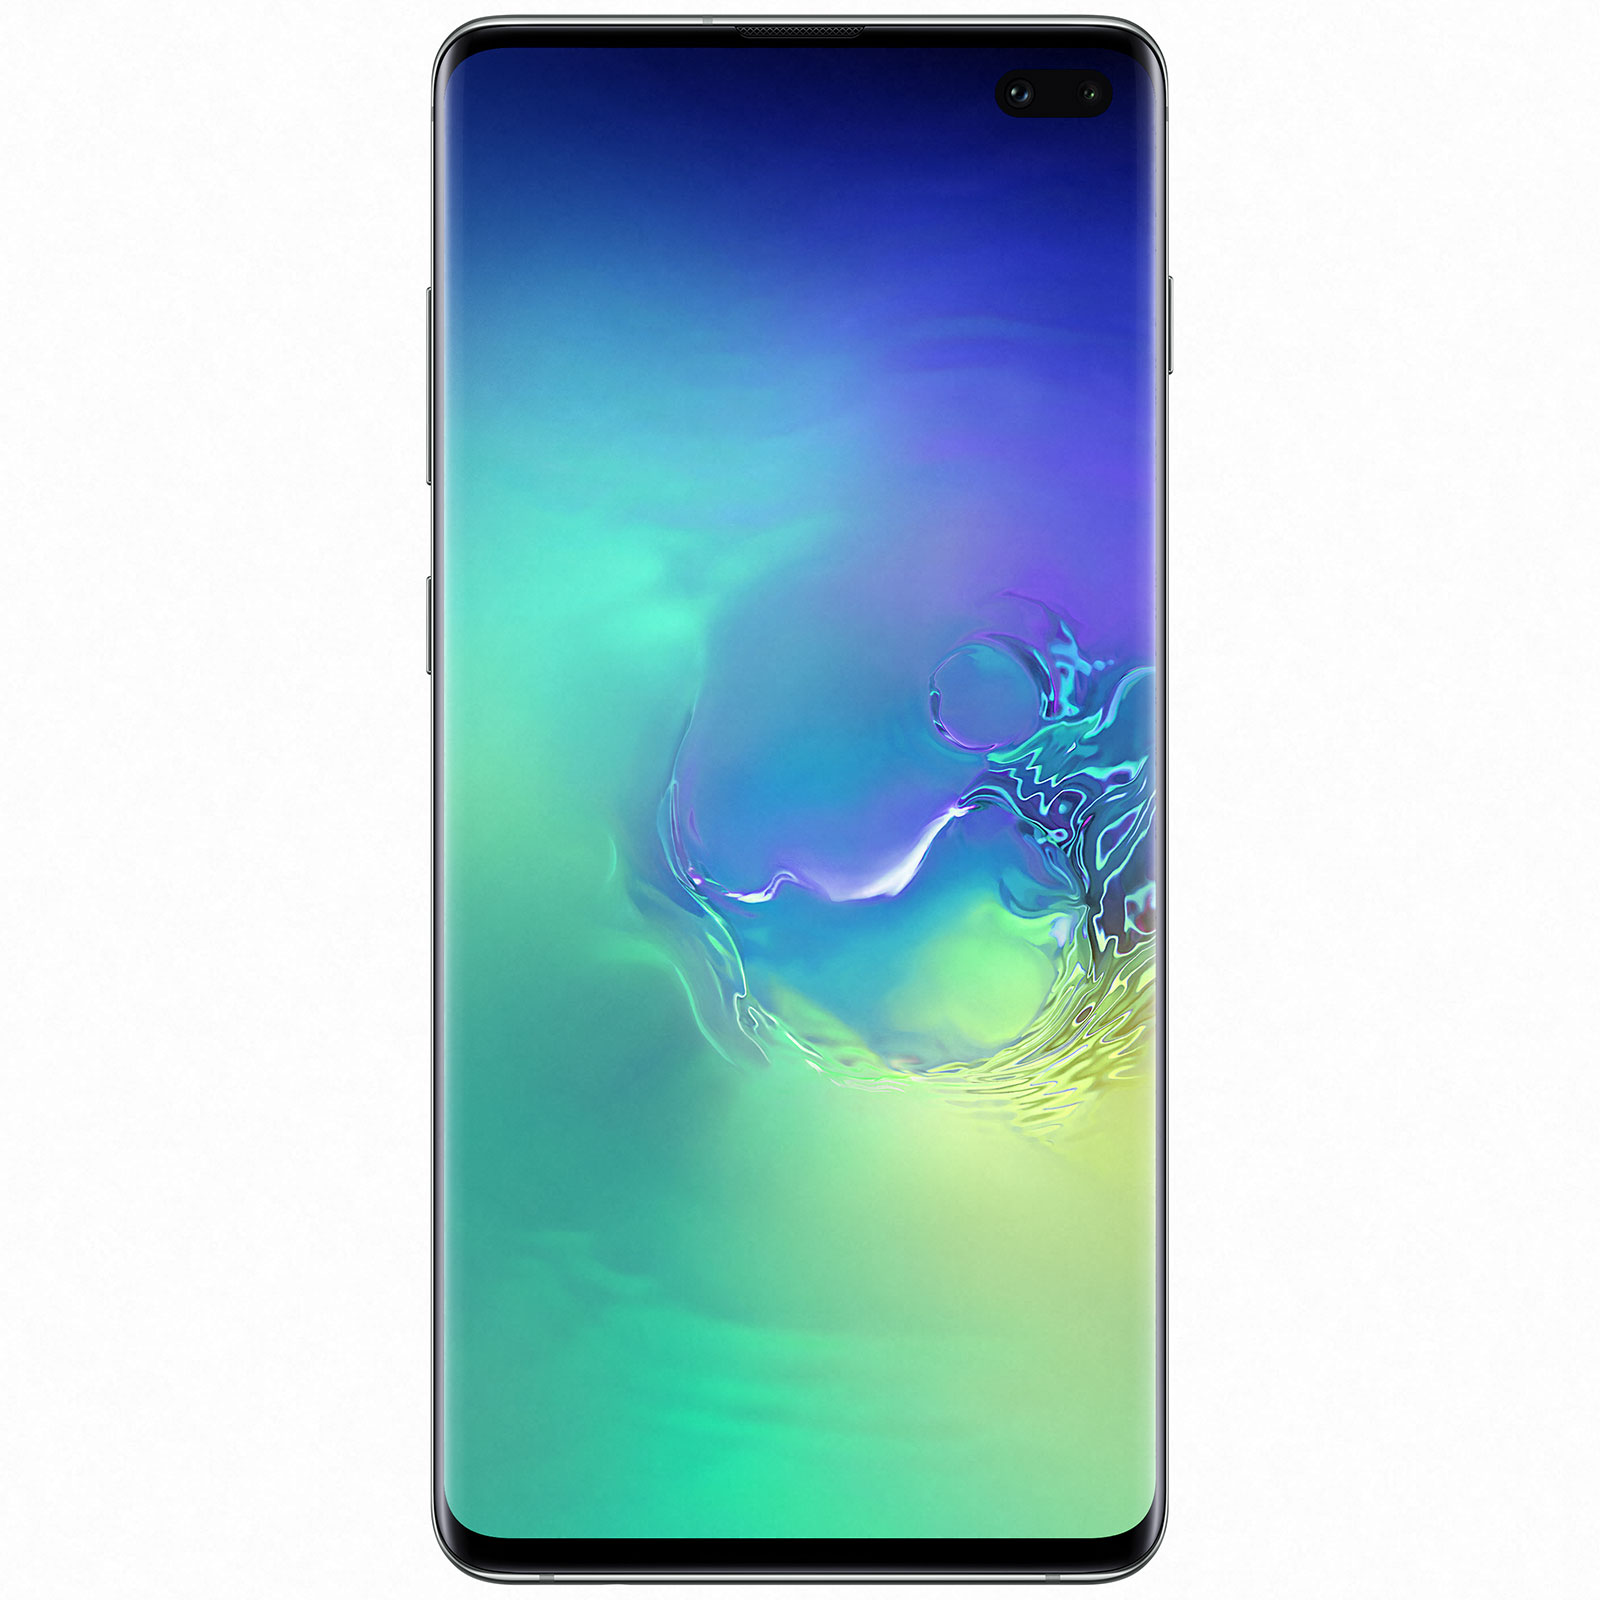 "Mobile & smartphone Samsung Galaxy S10+ SM-G975F Vert Prisme (8 Go / 128 Go) Smartphone 4G-LTE Advanced Dual SIM IP68 - Exynos 9820 8-Core 2.8 GHz - RAM 8 Go - Ecran tactile Super AMOLED 6.4"" 1440 x 3040 - 128 Go - NFC/Bluetooth 5.0 - 4100 mAh - Android 9.0"